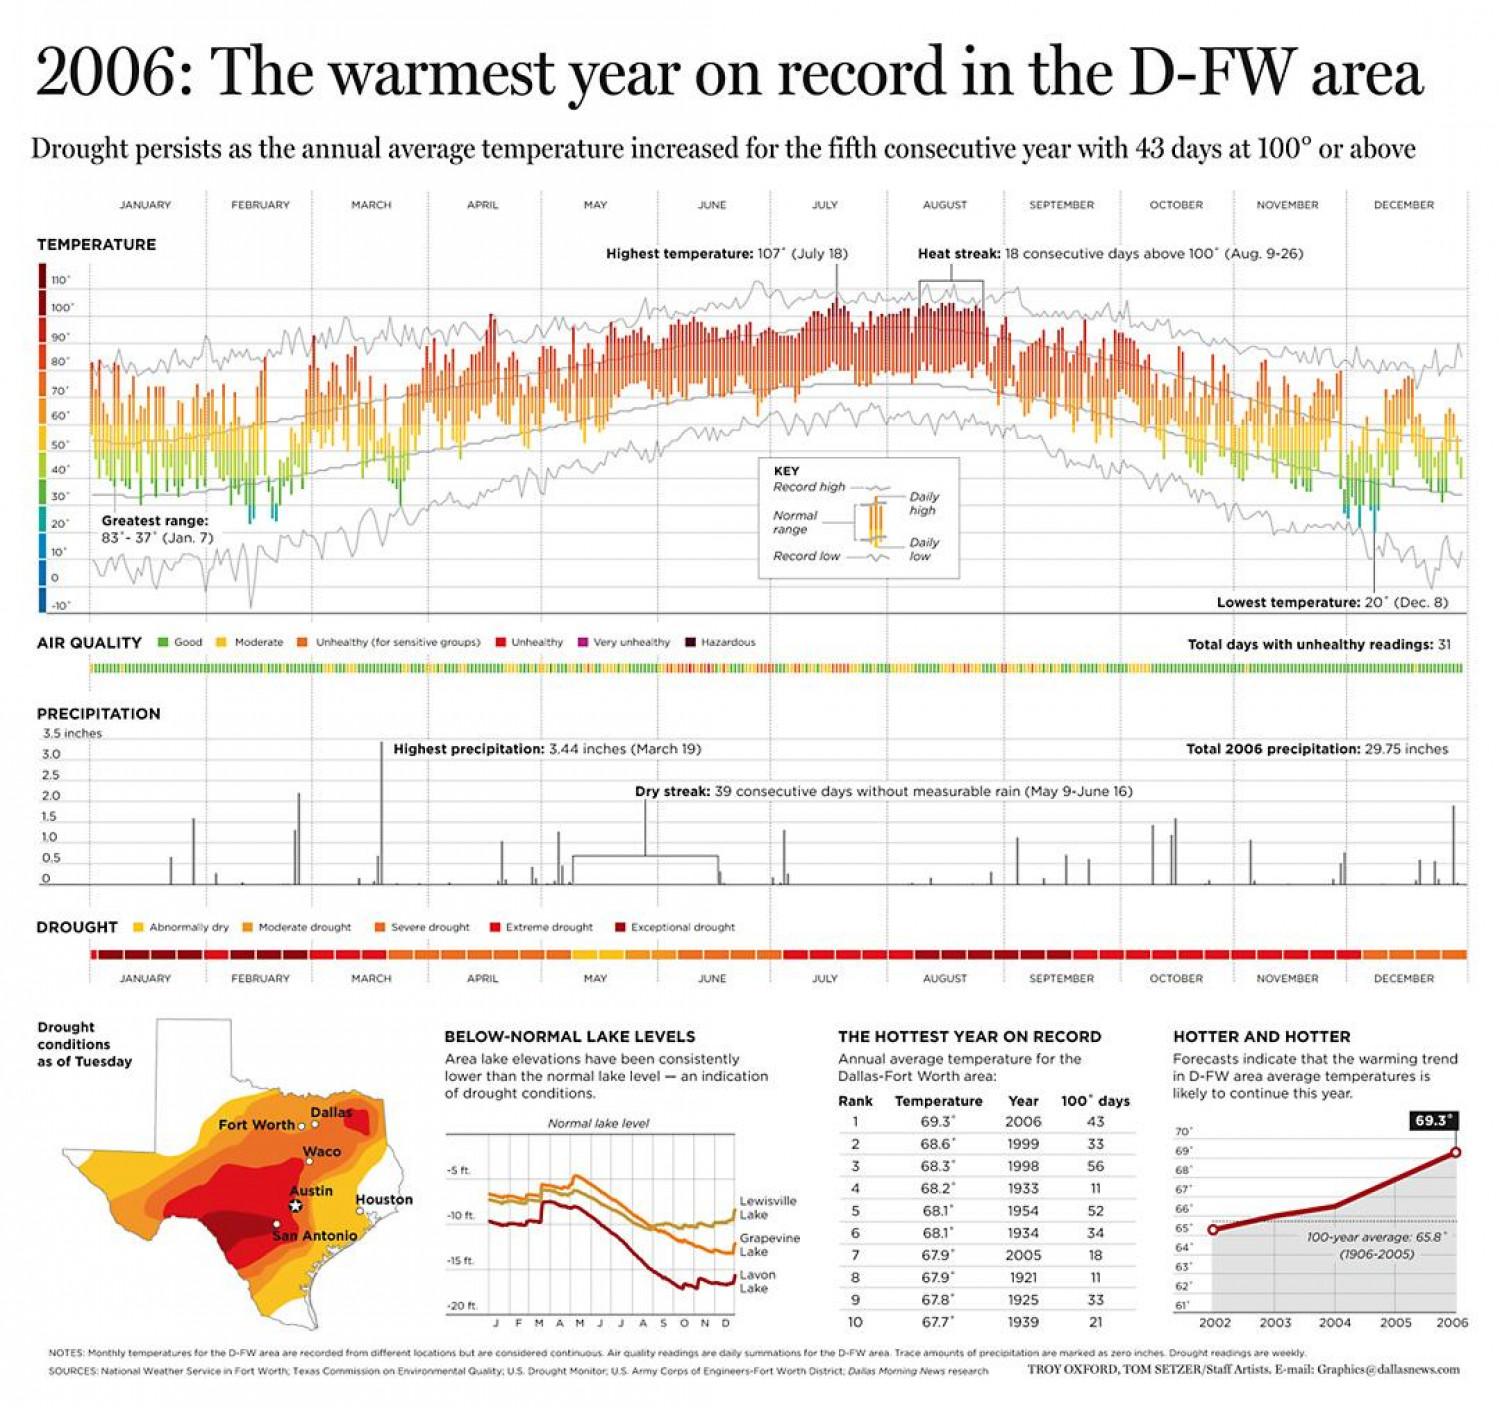 2006 The Warmest Year on Record in the D-FW area Infographic